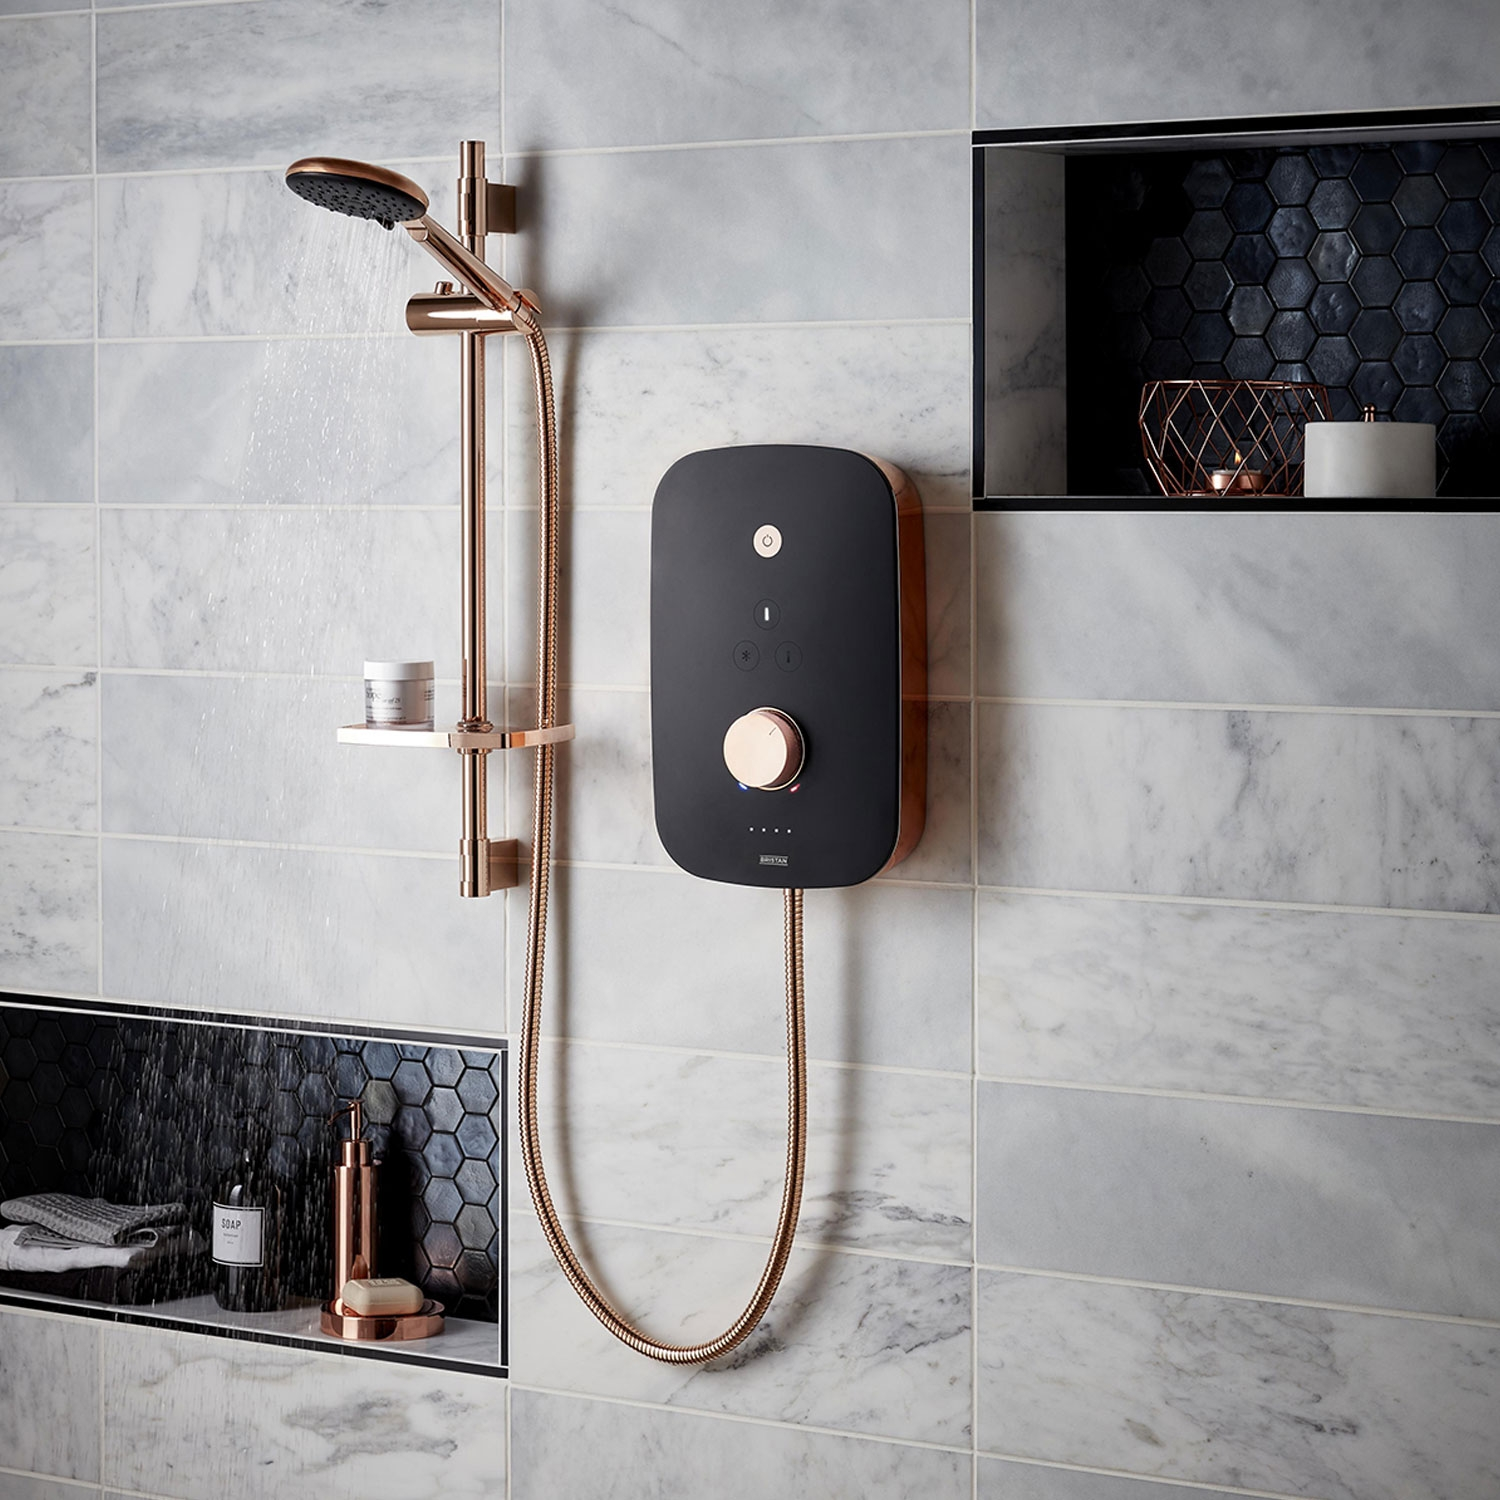 Bristan Noctis 10.5kw Electric Shower - Black and Rose Gold-0